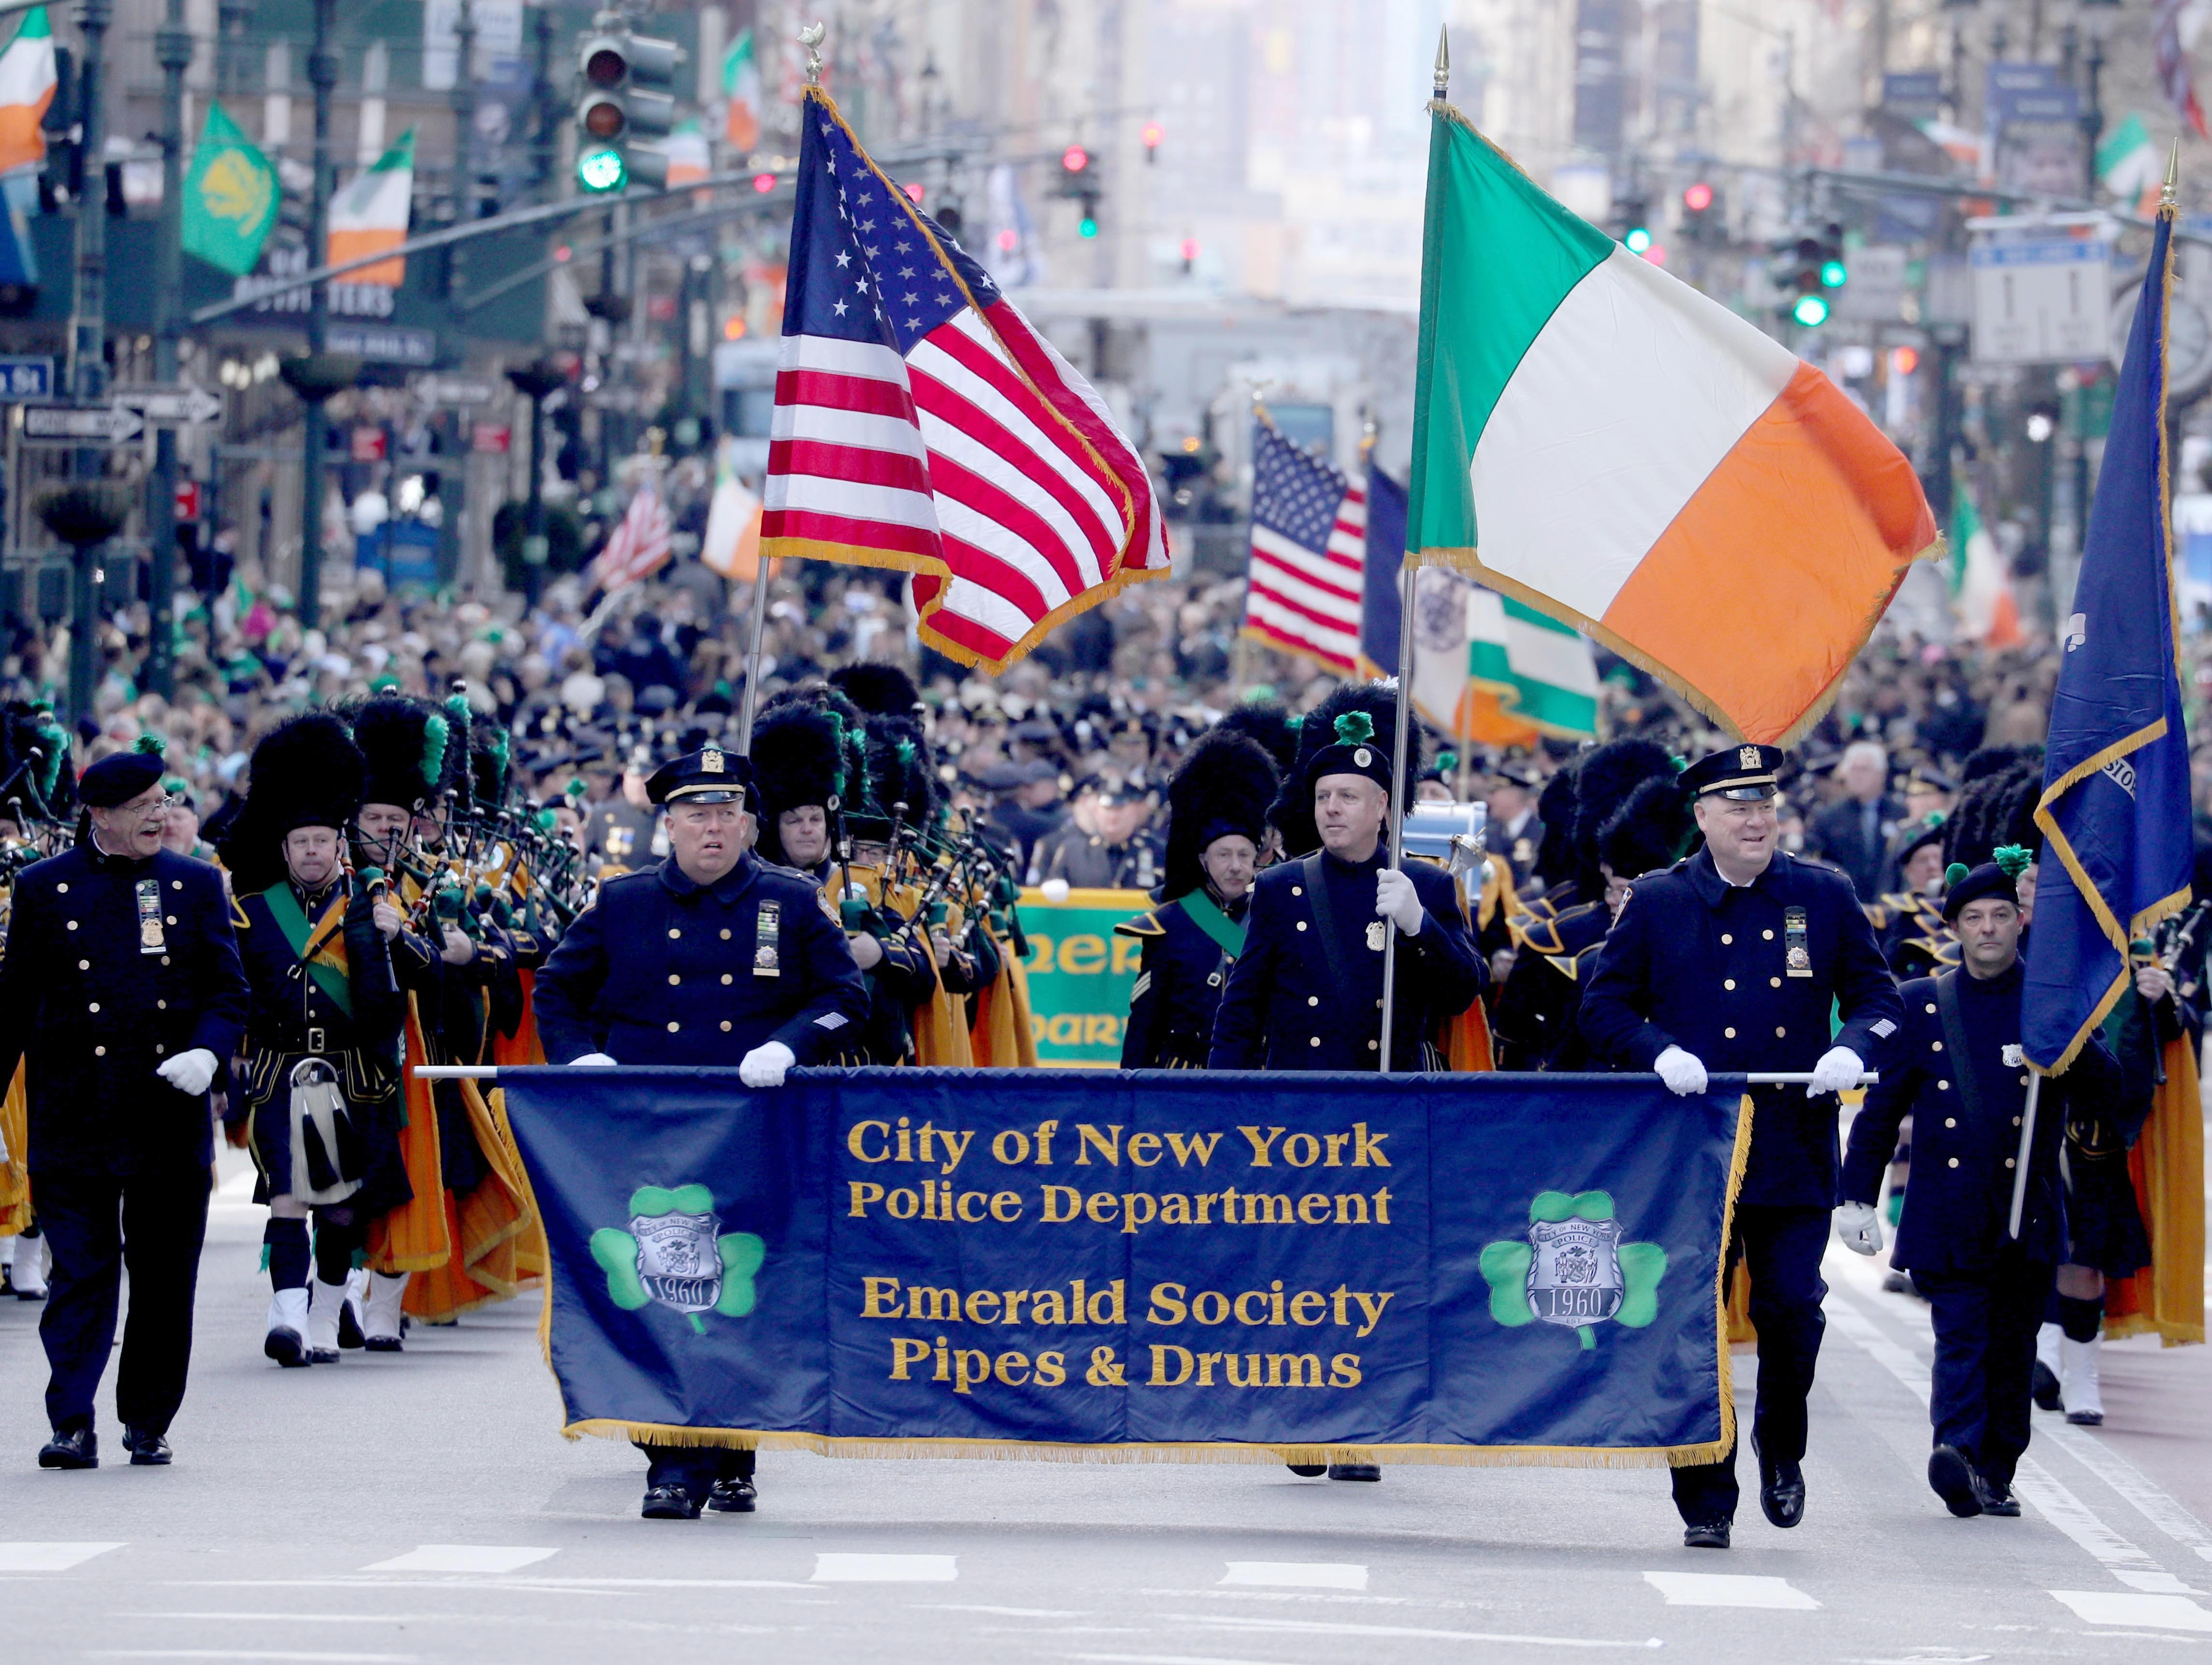 The City of New York Police Department Emerald Society Pipes and Drums march in the 258th annual St. Patrick's Day Parade in New York City on March 16, 2019.